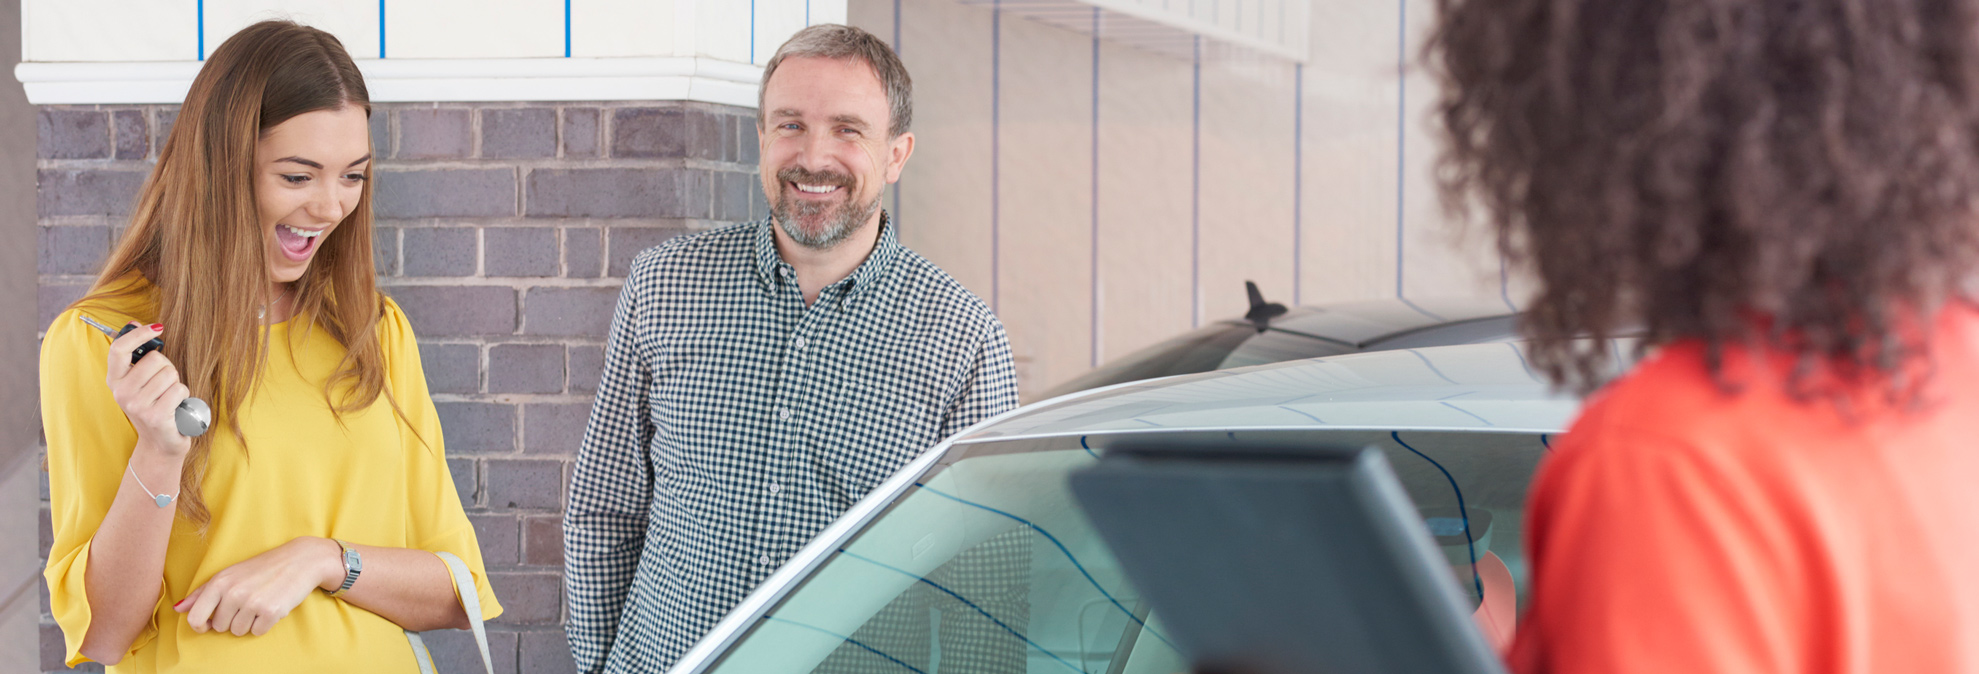 How to Buy Your First New or Used Car - Consumer Reports